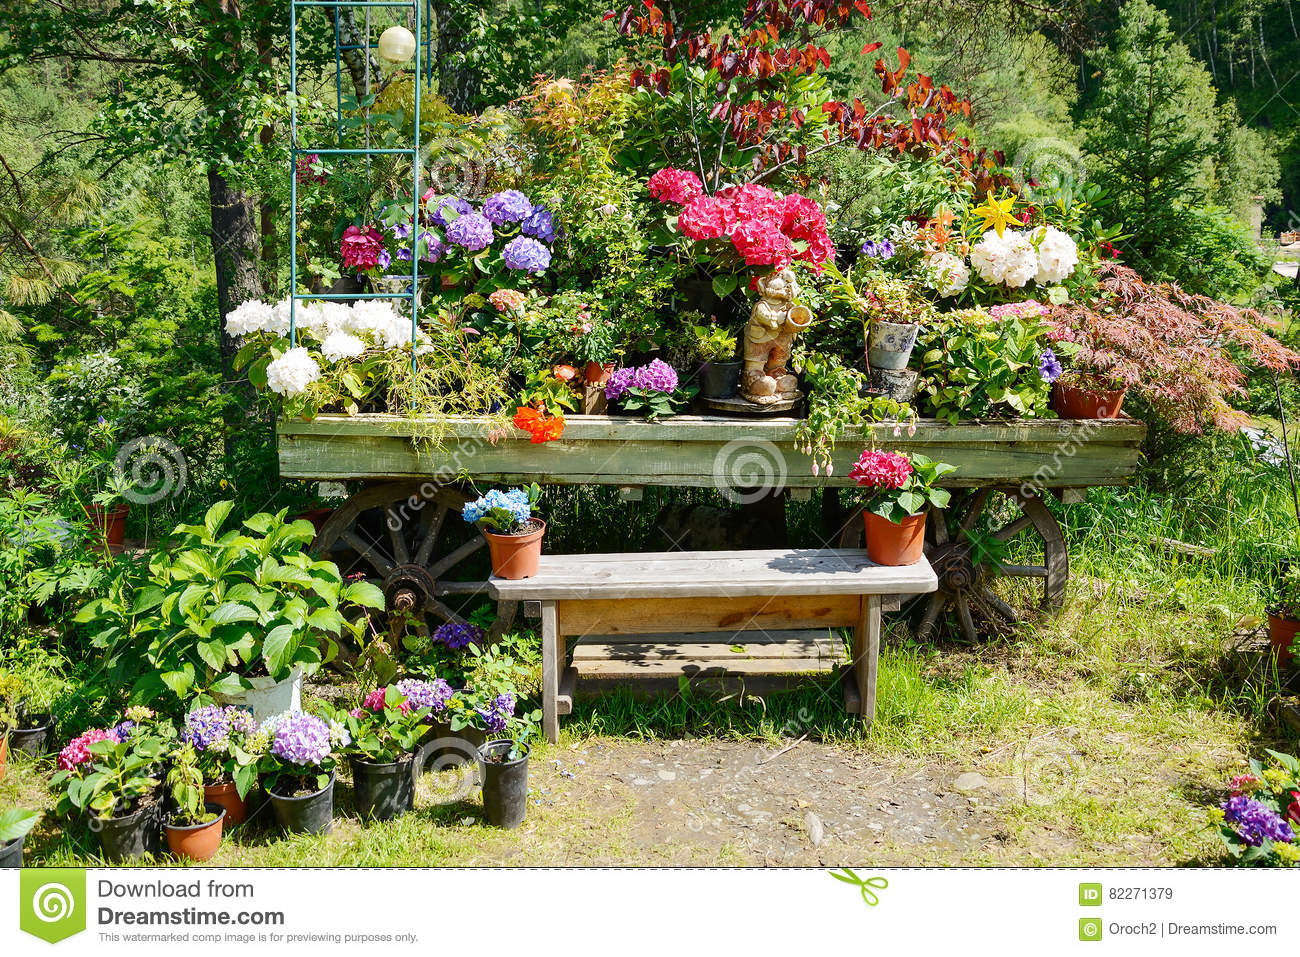 Beautiful Download Decorative Garden Bench Stock Image. Image Of Style, Nature    82271379